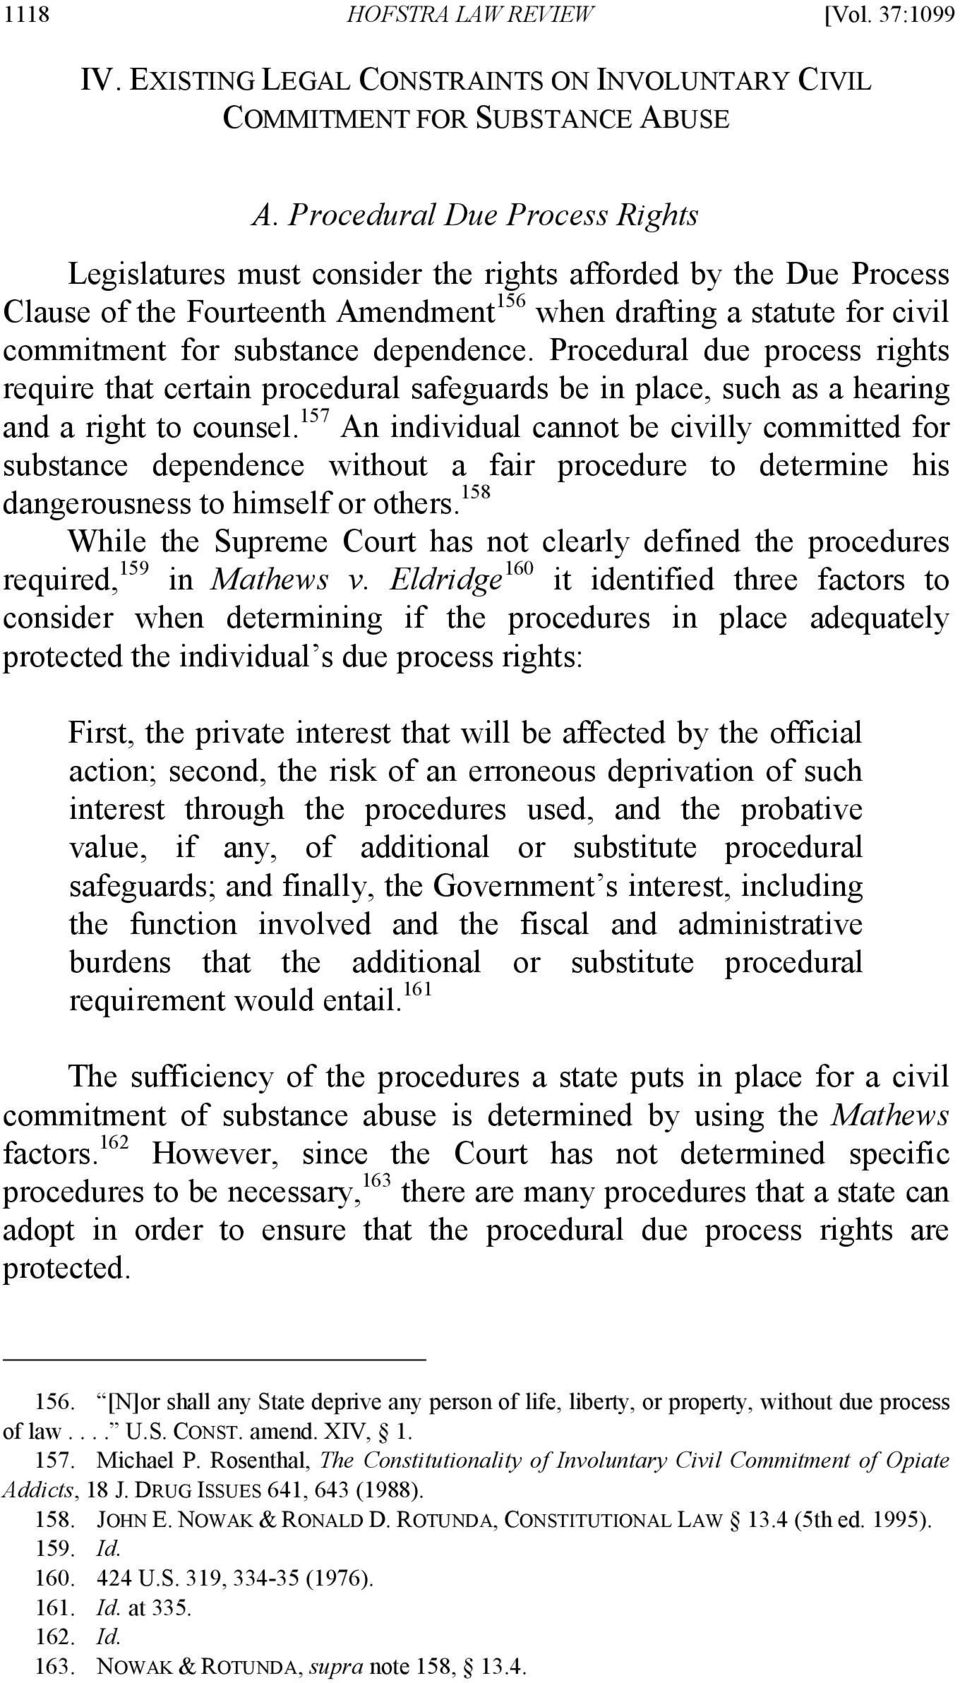 dependence. Procedural due process rights require that certain procedural safeguards be in place, such as a hearing and a right to counsel.